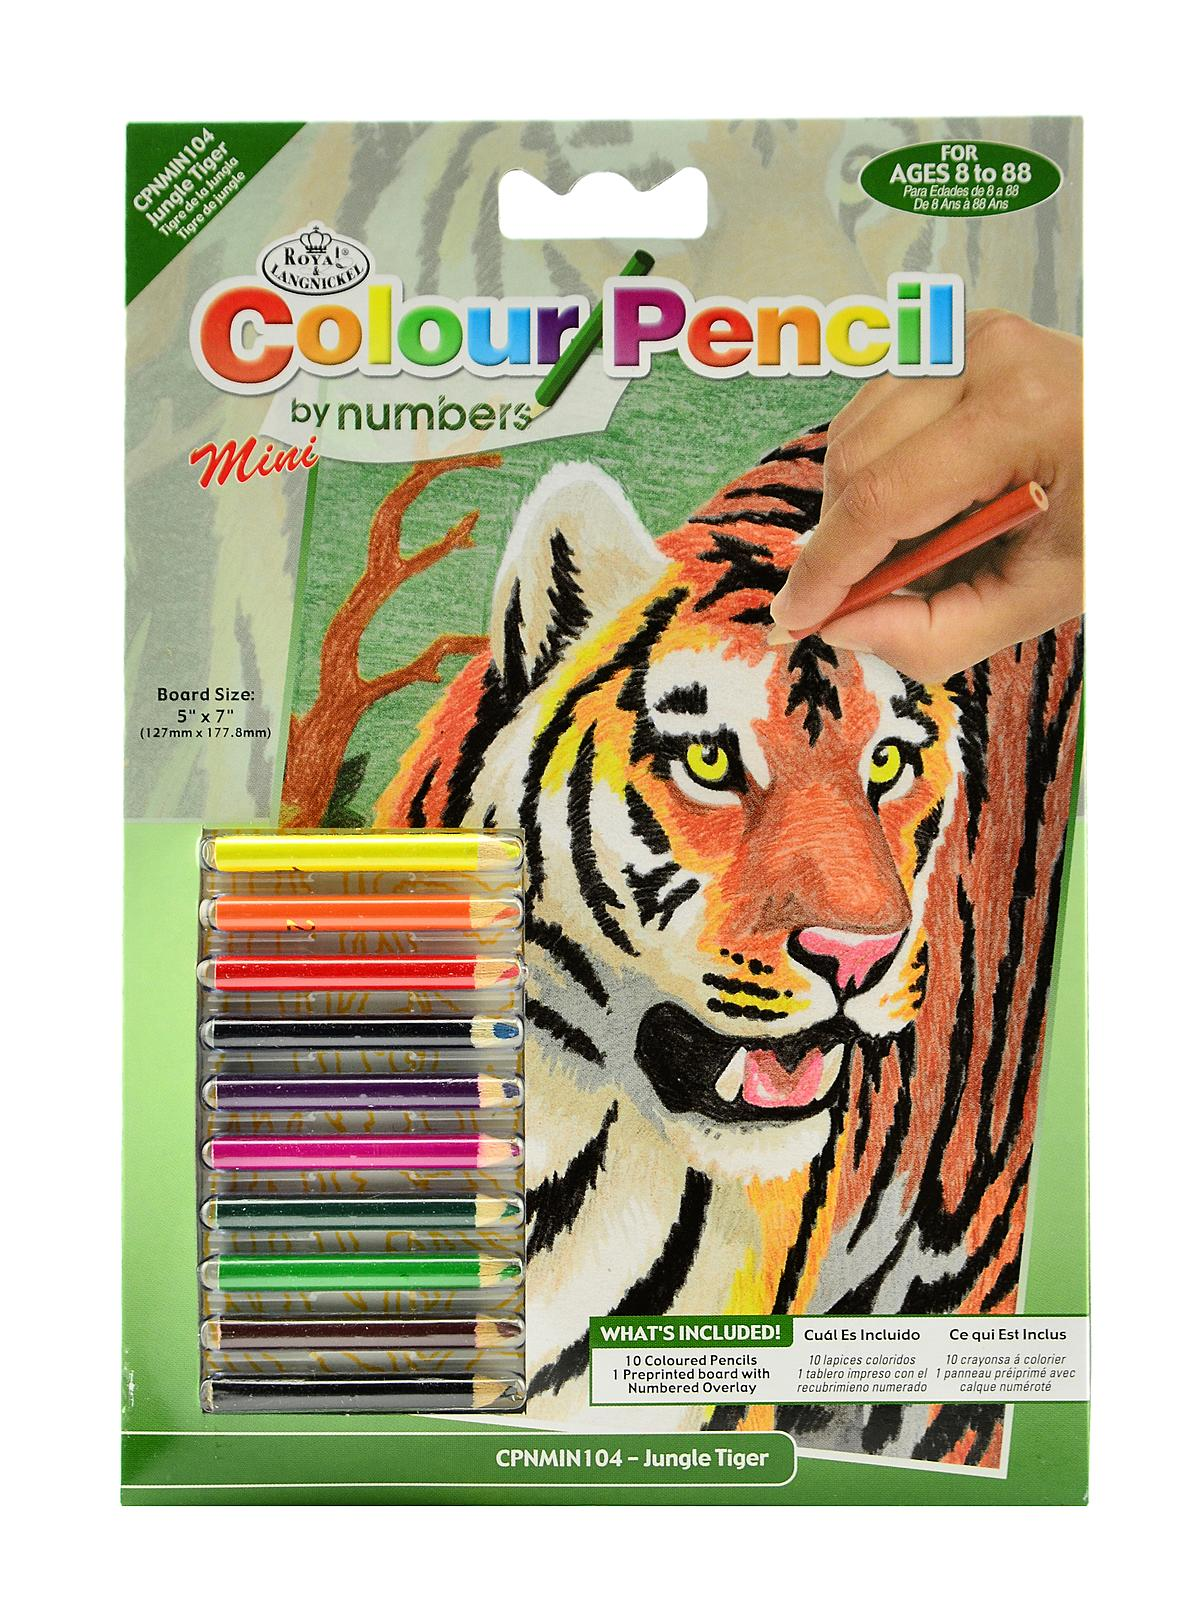 Colour By Number Kits : Royal & Langnickel Mini Color Pencil By Number Kits MisterArt.com